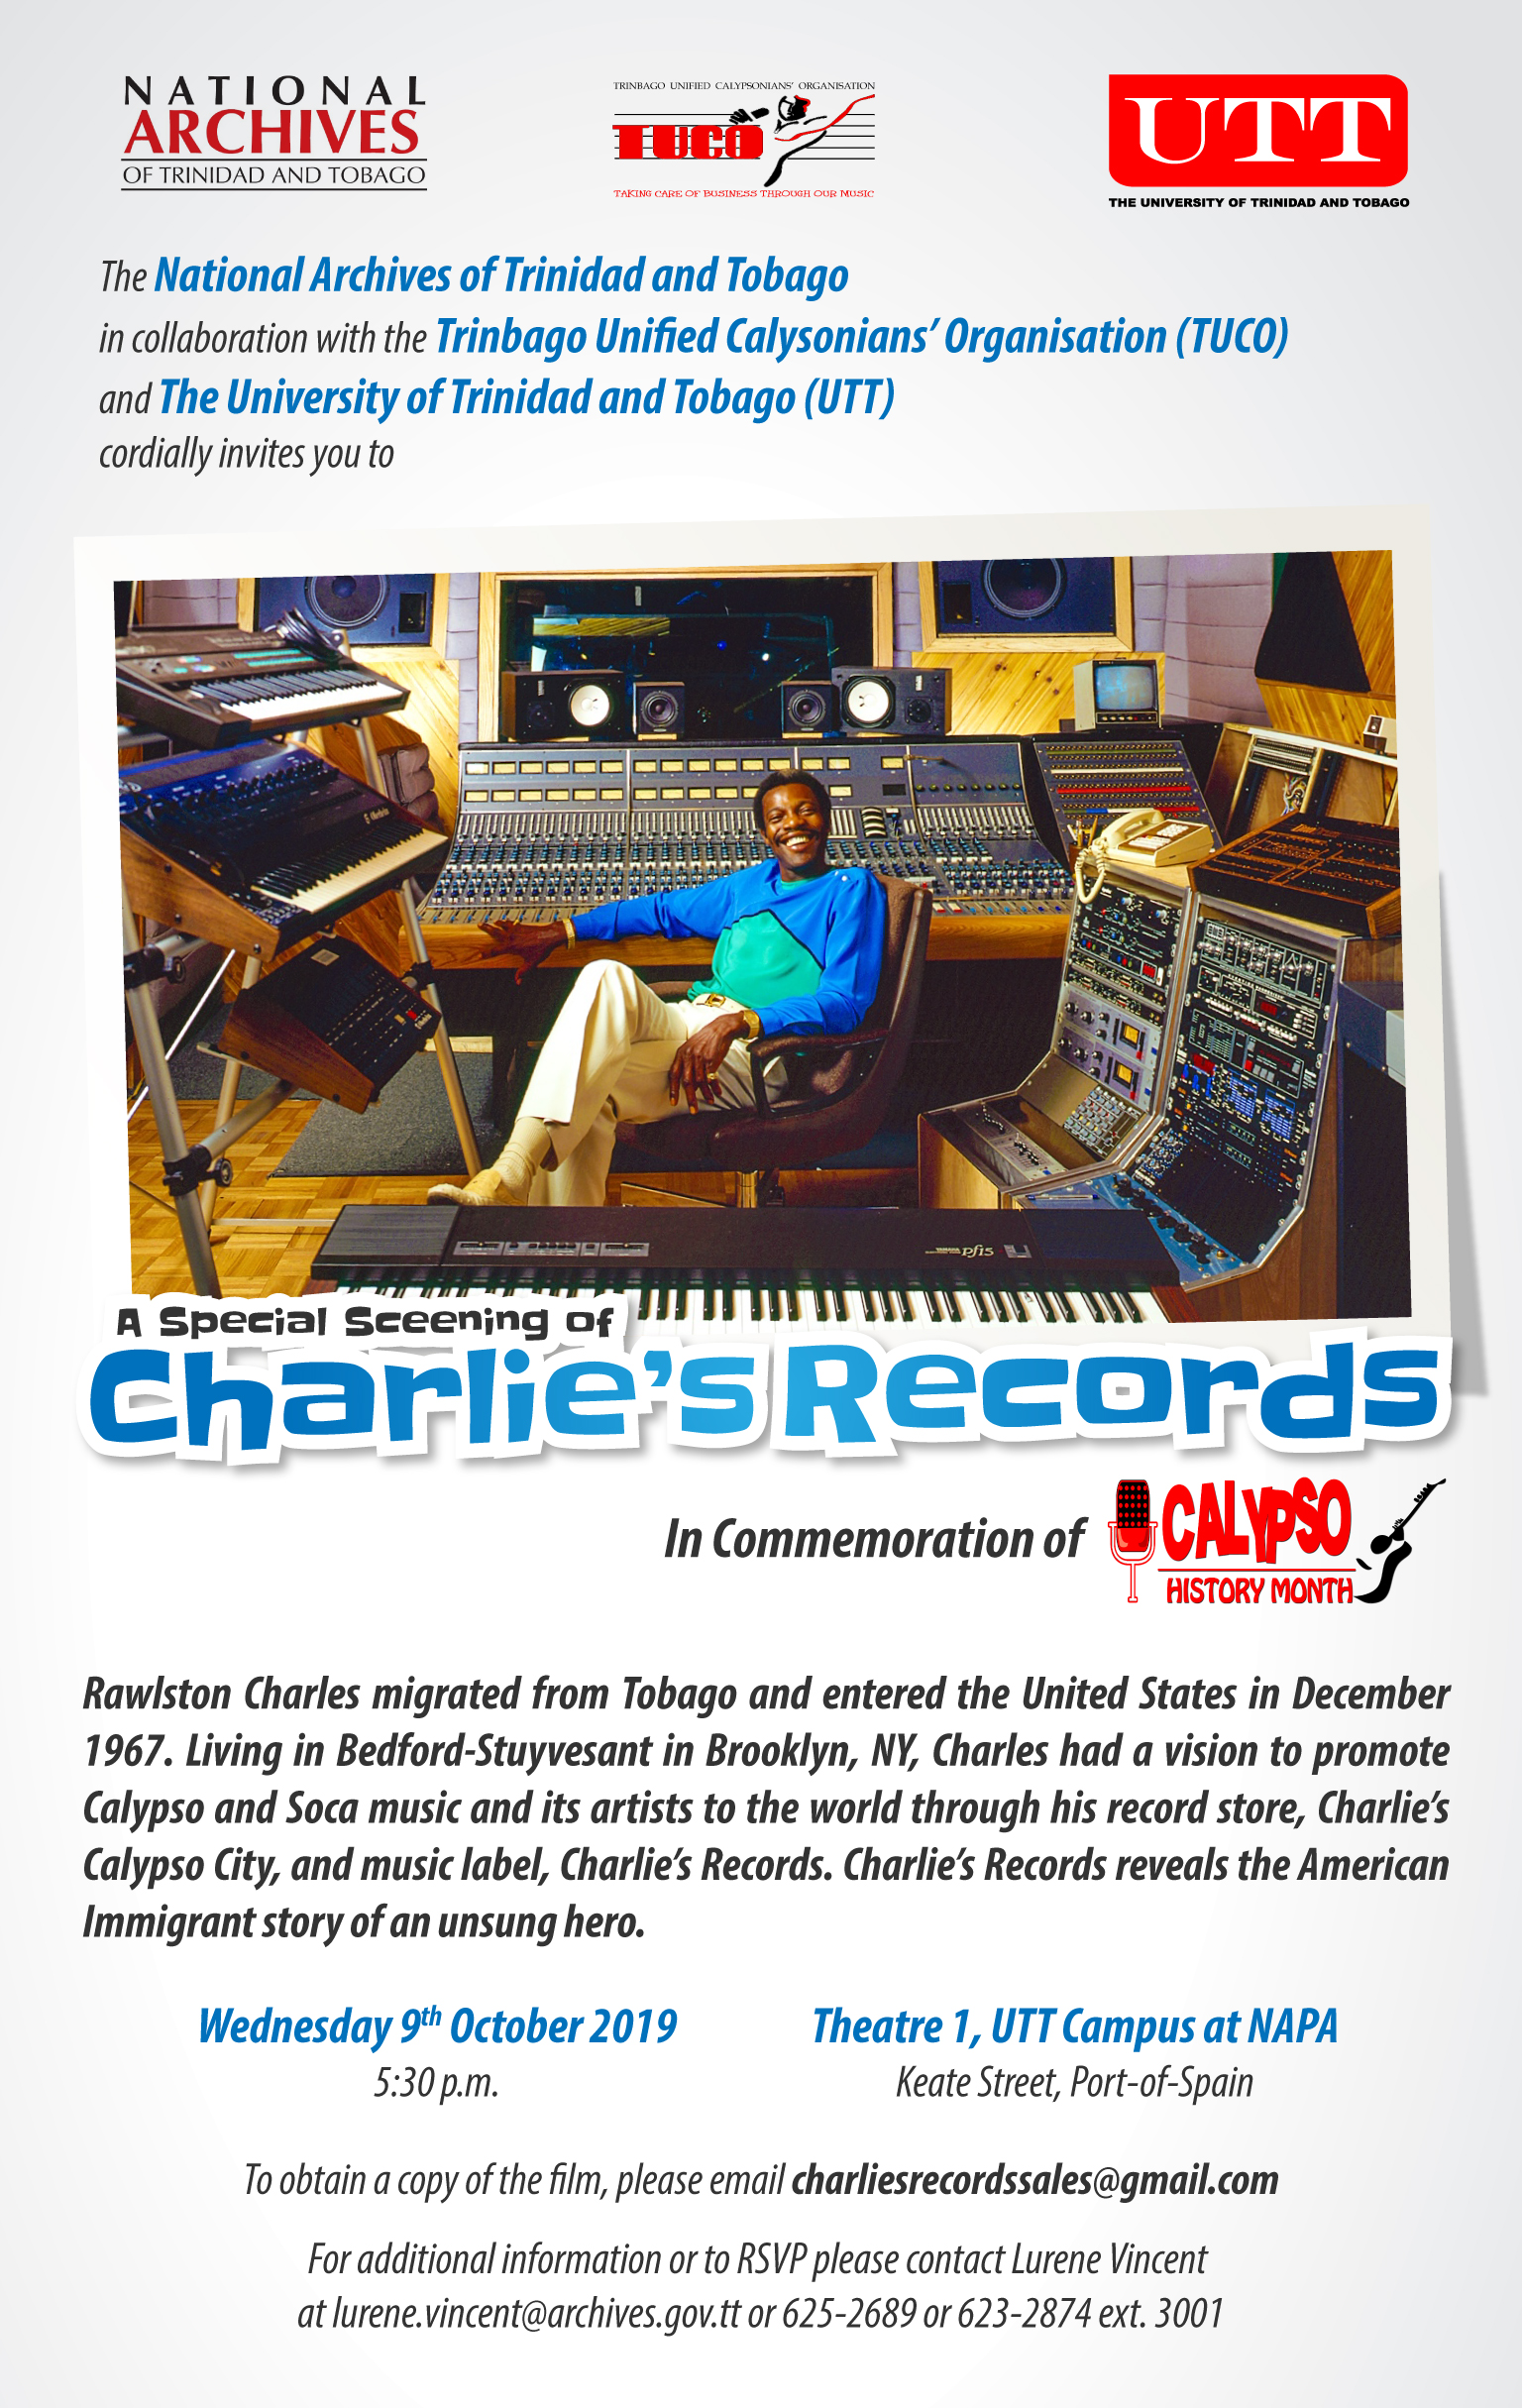 Charlies Records